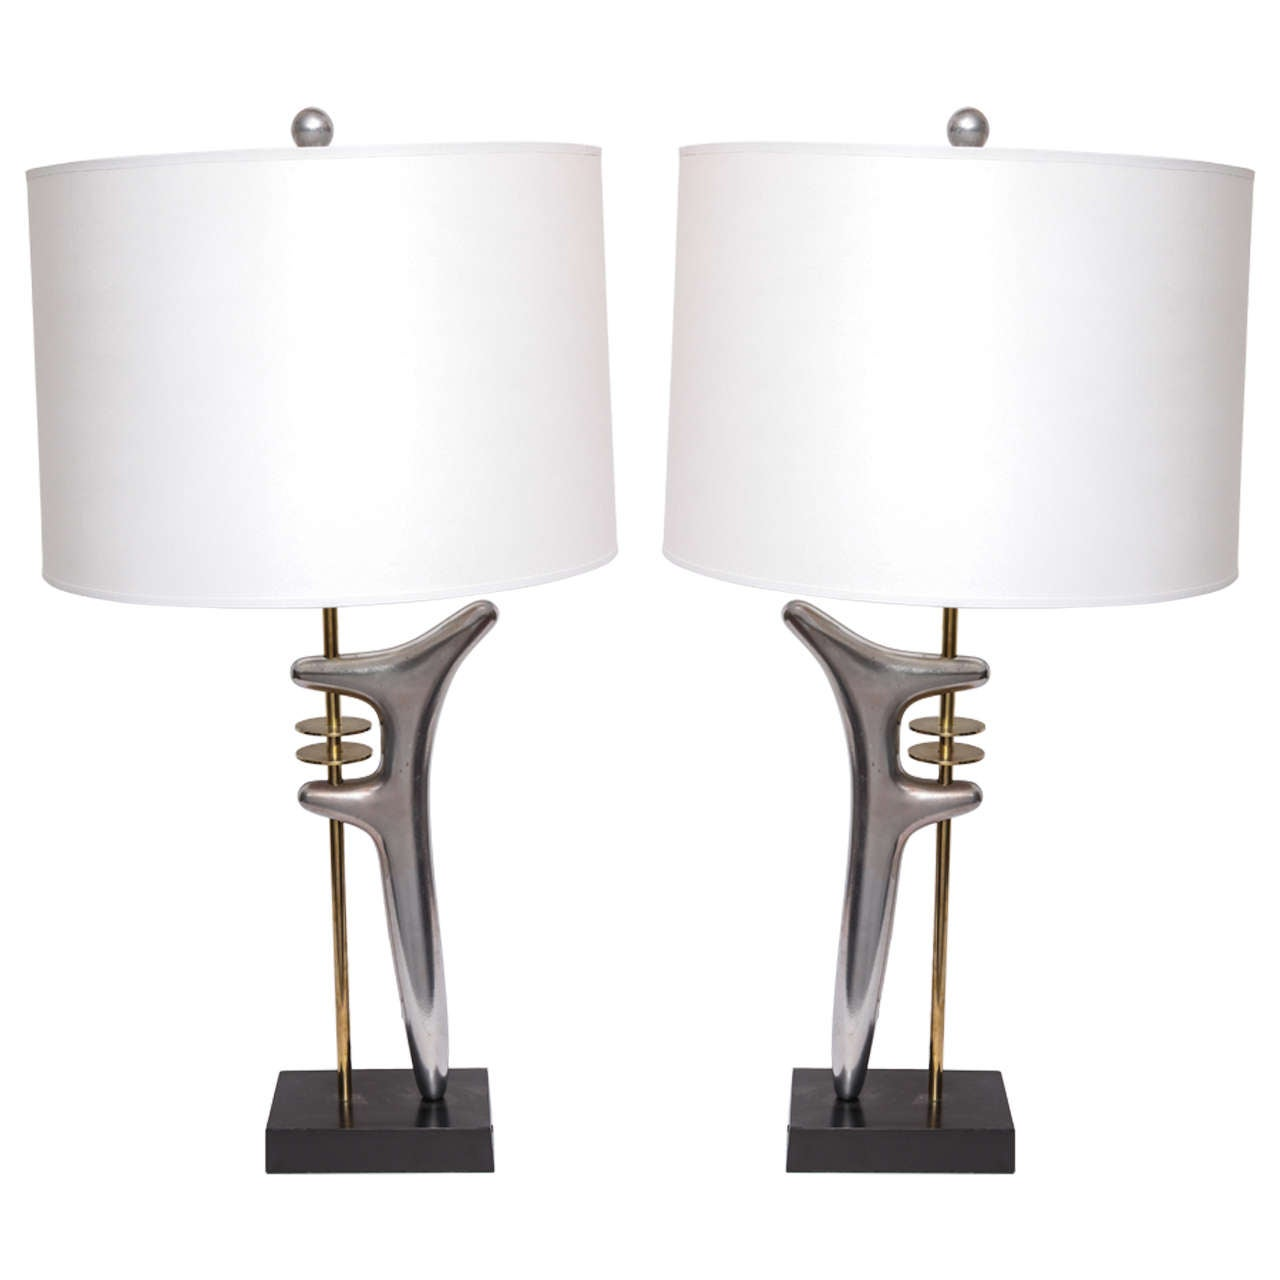 Pair of 1950s sculptural table lamps attributed to isamu noguchi pair of 1950s sculptural table lamps attributed to isamu noguchi 1 geotapseo Choice Image